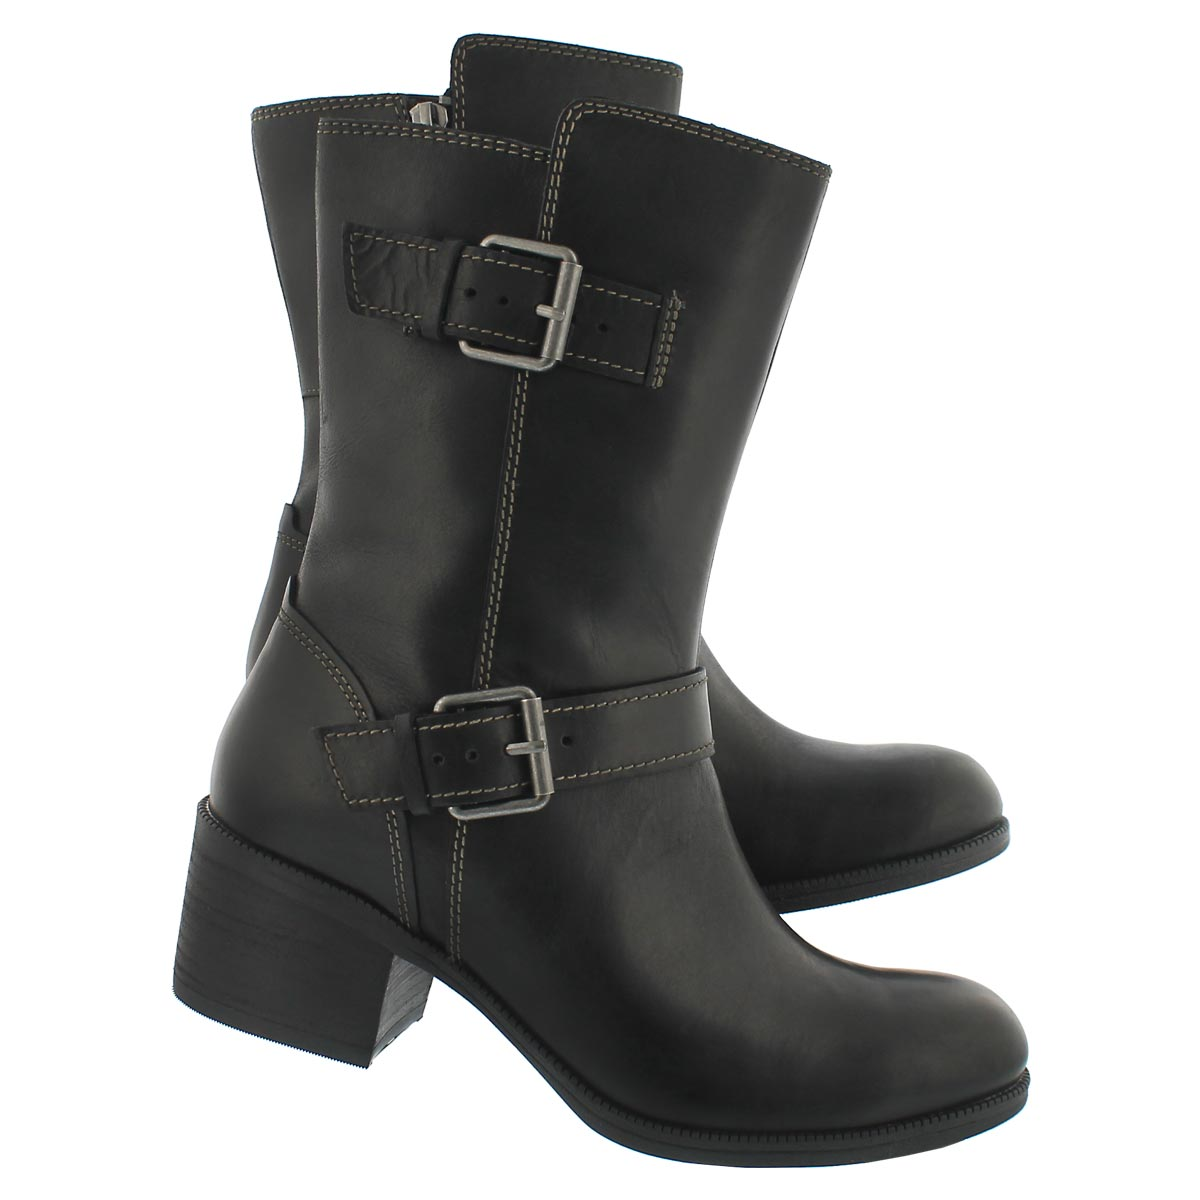 Lds Maypearl Oasis blk mid-calf boot